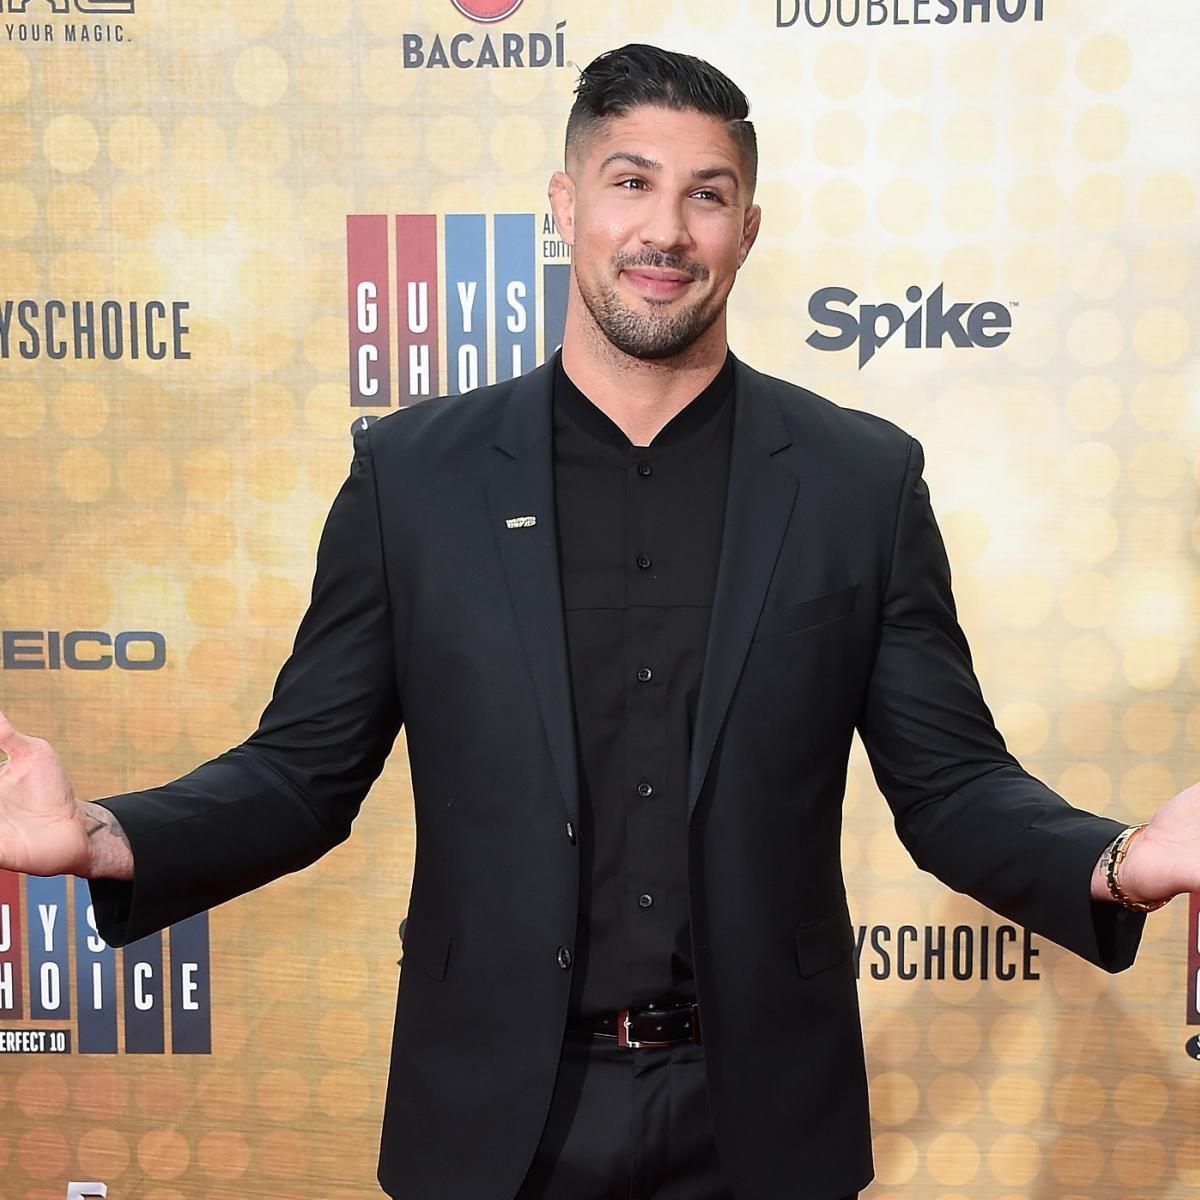 Dana White in Escalating Social Media Feud with Former Fighter Brendan Schaub